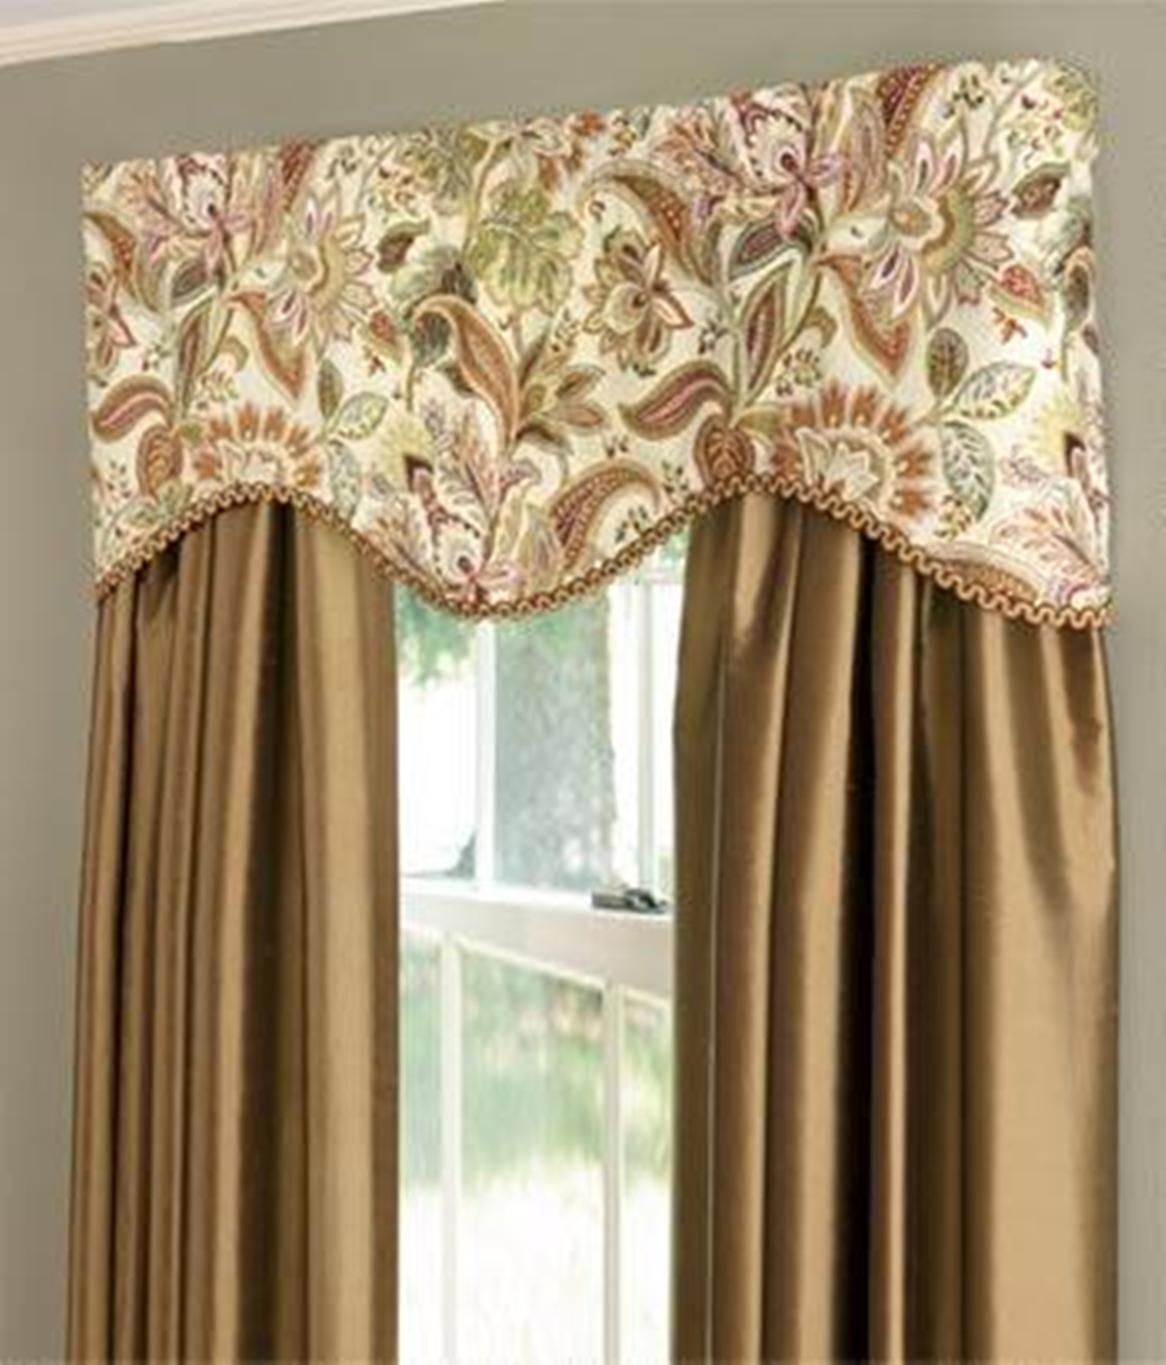 Scalloped Valances The Scalloped Valances Are Feminine And Soft Fitting In With The Overall Dining Room Curtains Window Coverings Bedroom Bedroom Valances #scalloped #valances #for #living #room